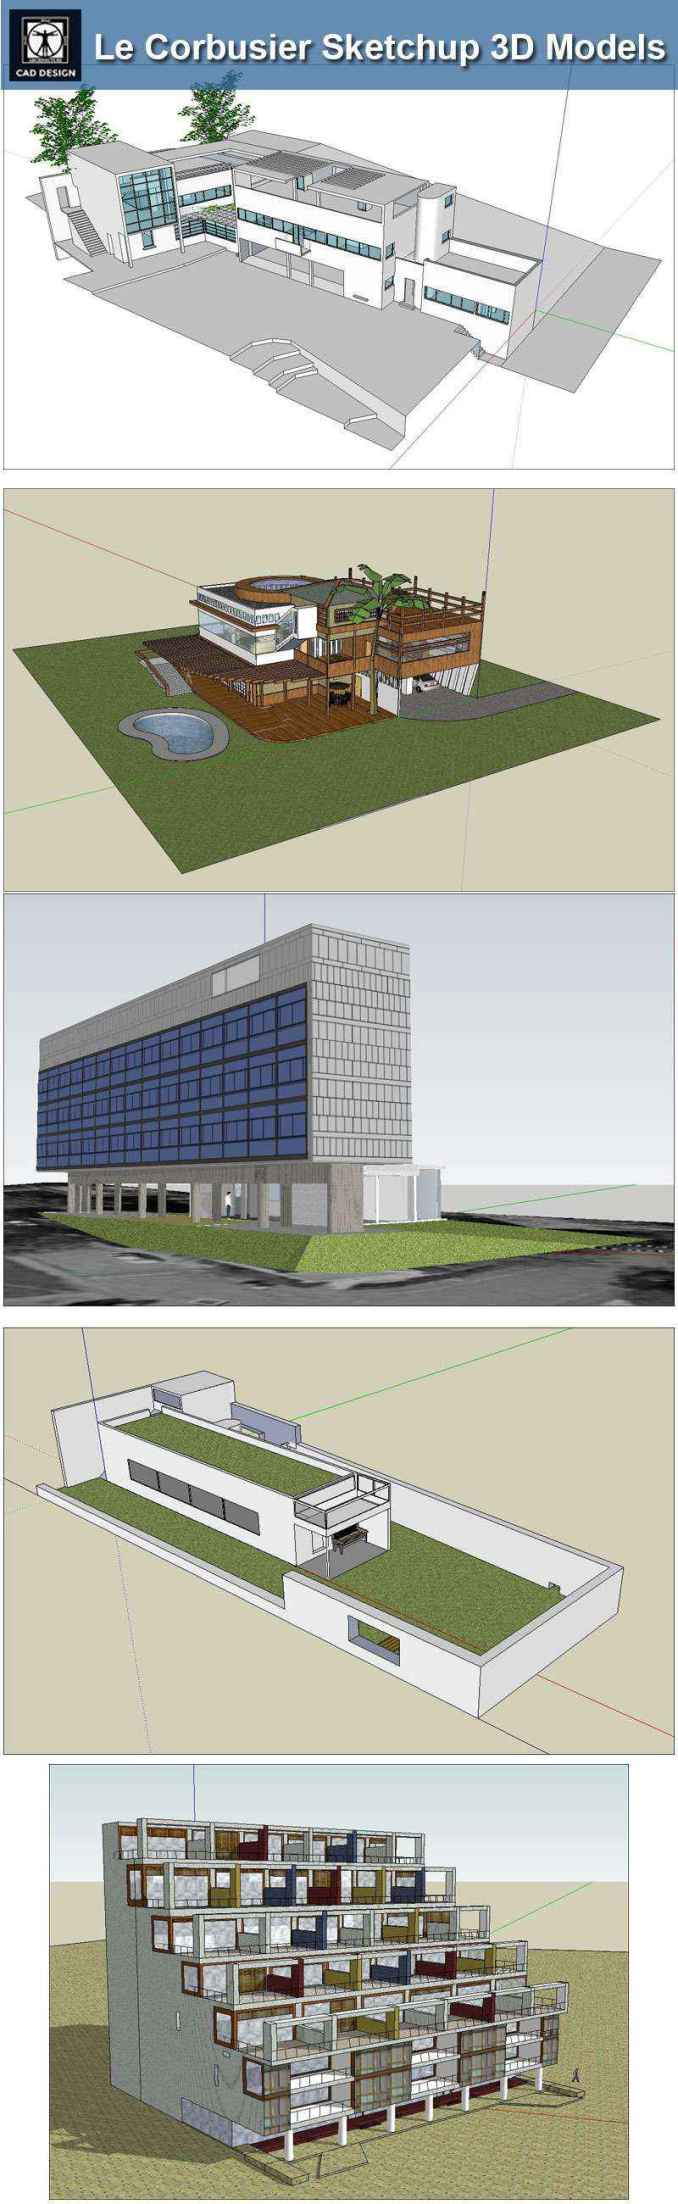 24 Types of Le Corbusier Architecture Sketchup 3D Models(Recommanded!!)